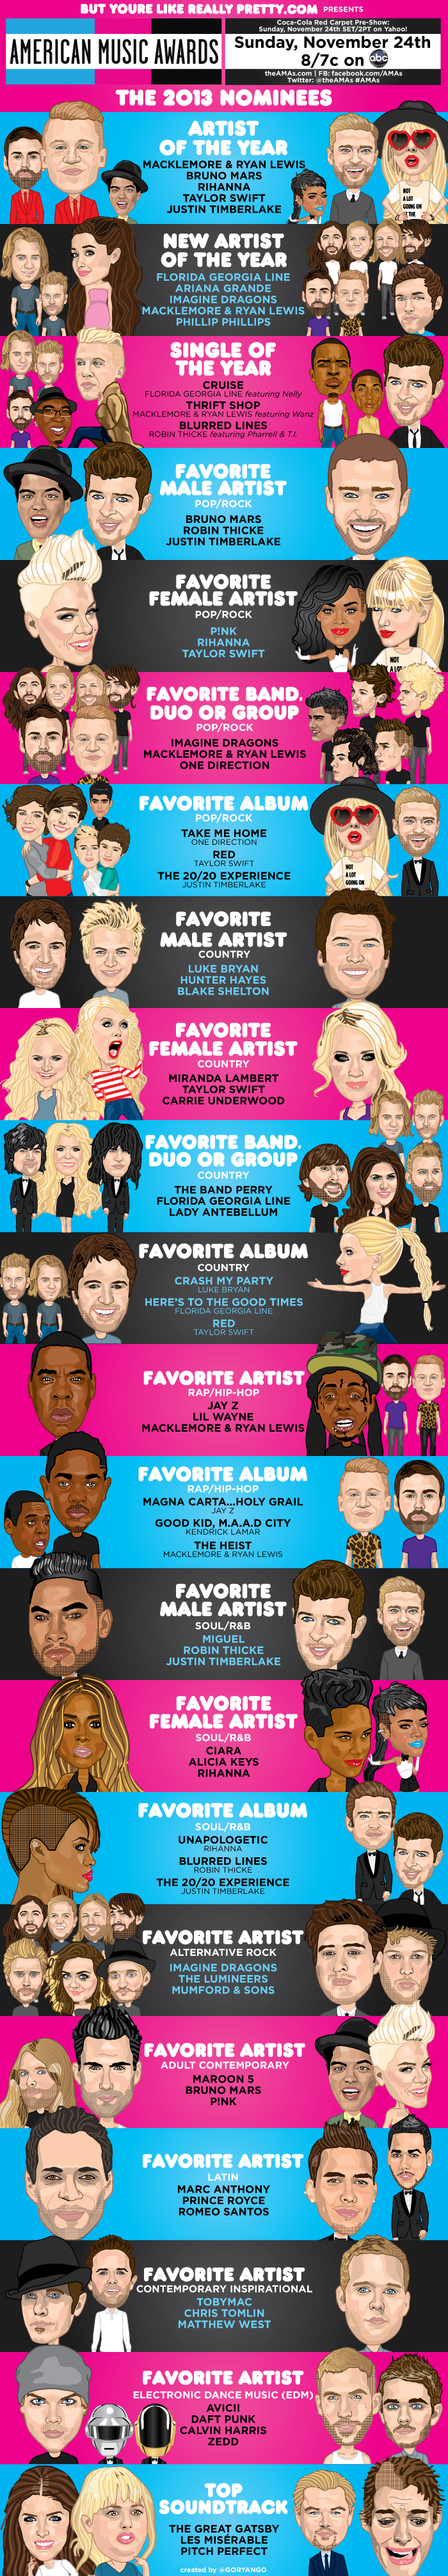 BYLRP_AMAs_NOMINEES